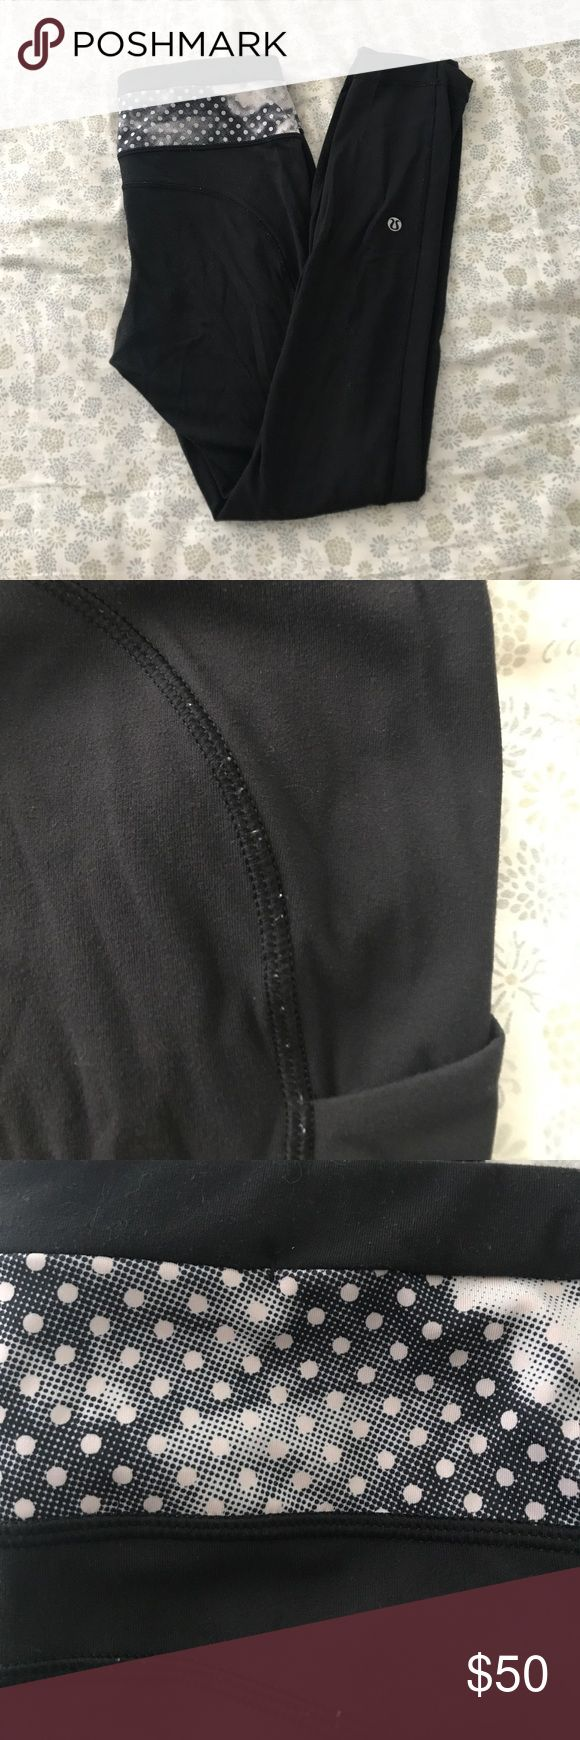 """Lululemon black leggings Cute pattern on waist band! Have been worn a few times but not significantly. Some pilling on seams as pictured. Small zipper pocket as pictured. Tag has been ripped out but you can see the size """"6"""" inside the back pocket. lululemon athletica Pants Leggings"""